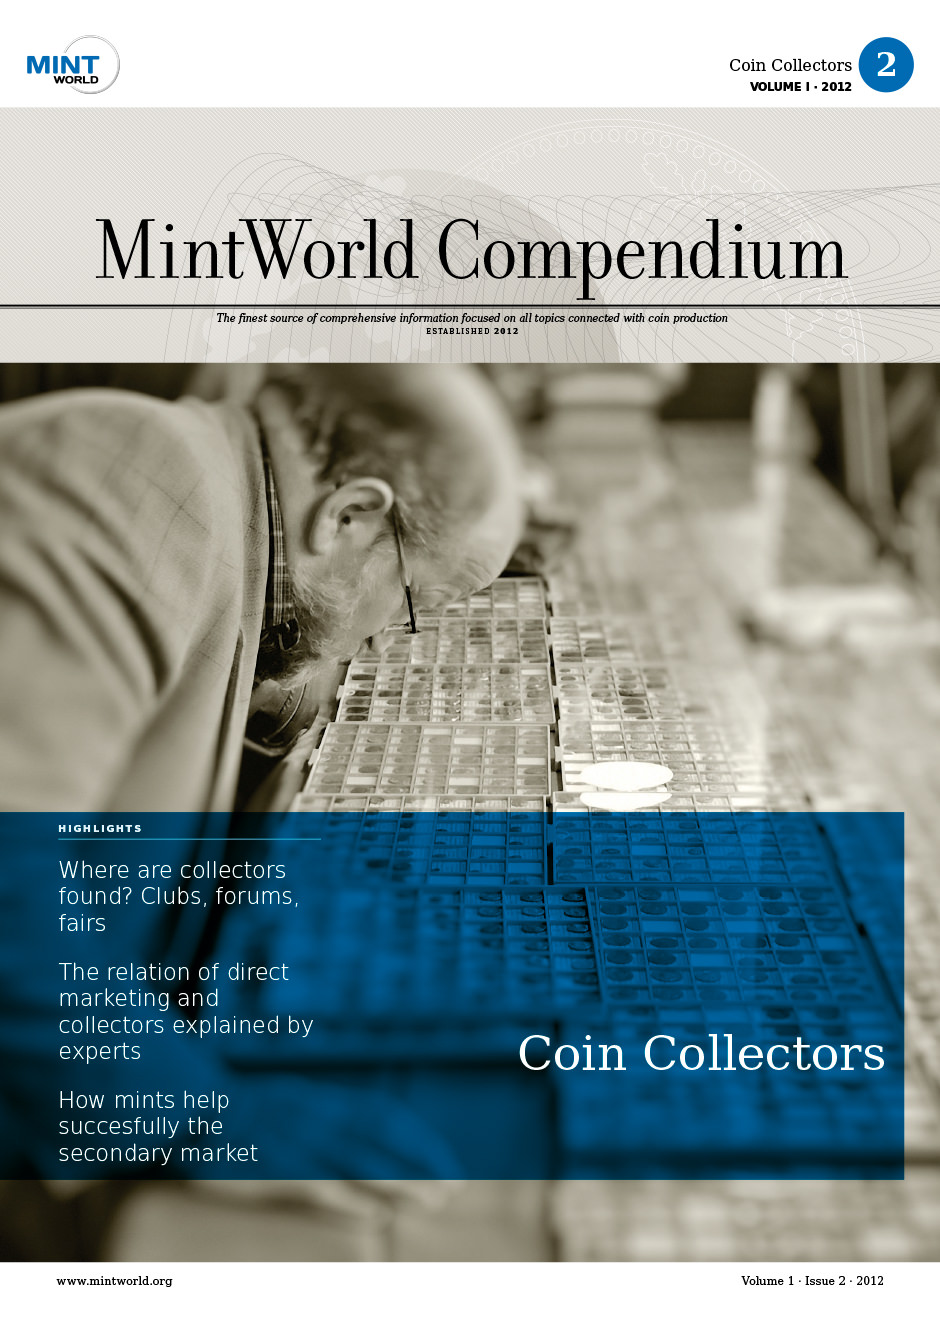 MintWorld Compendium, Compendium 1 · Issue 2 · 2012, Coin Collectors,